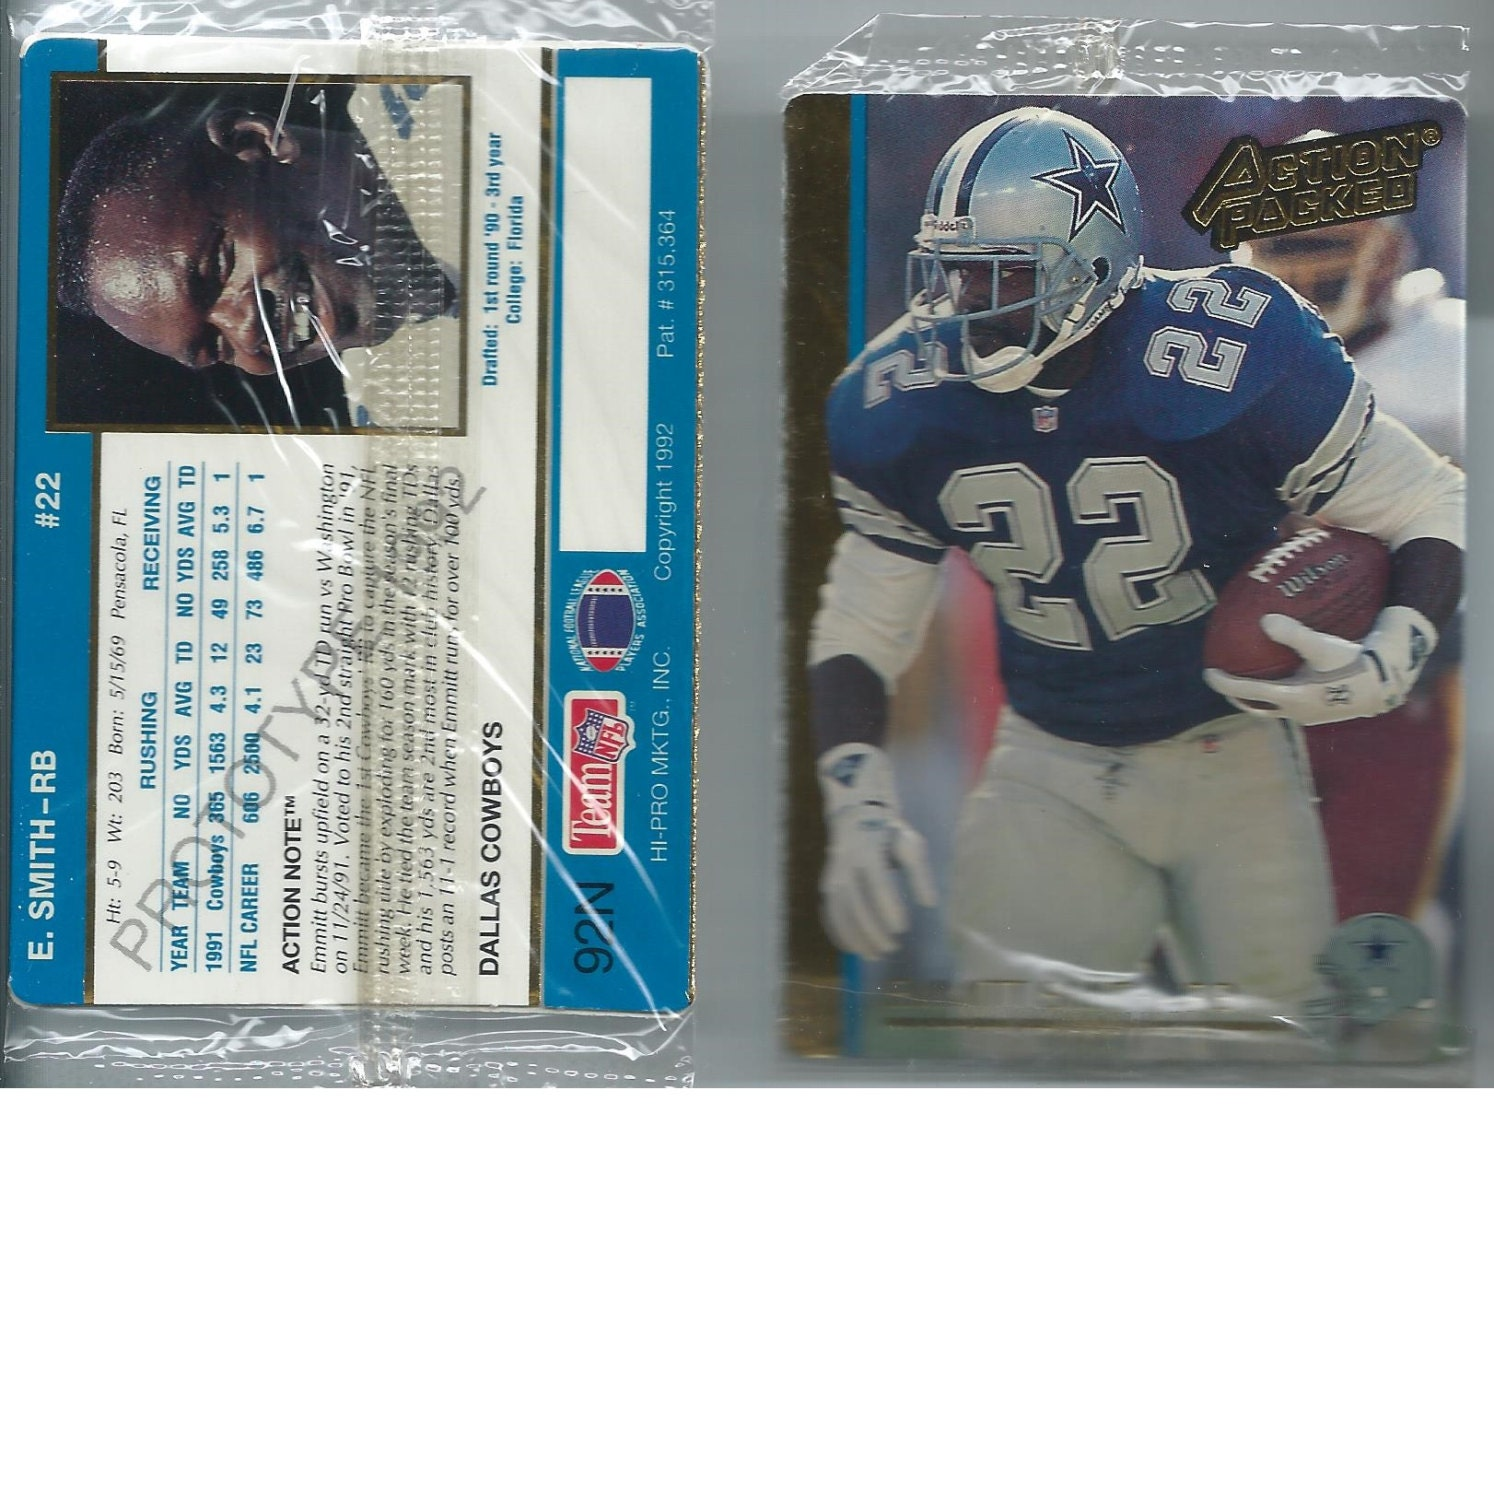 Rookies Coupons: 1991 Emmitt Smith Action Packed Rookie Prototype Card SEALED